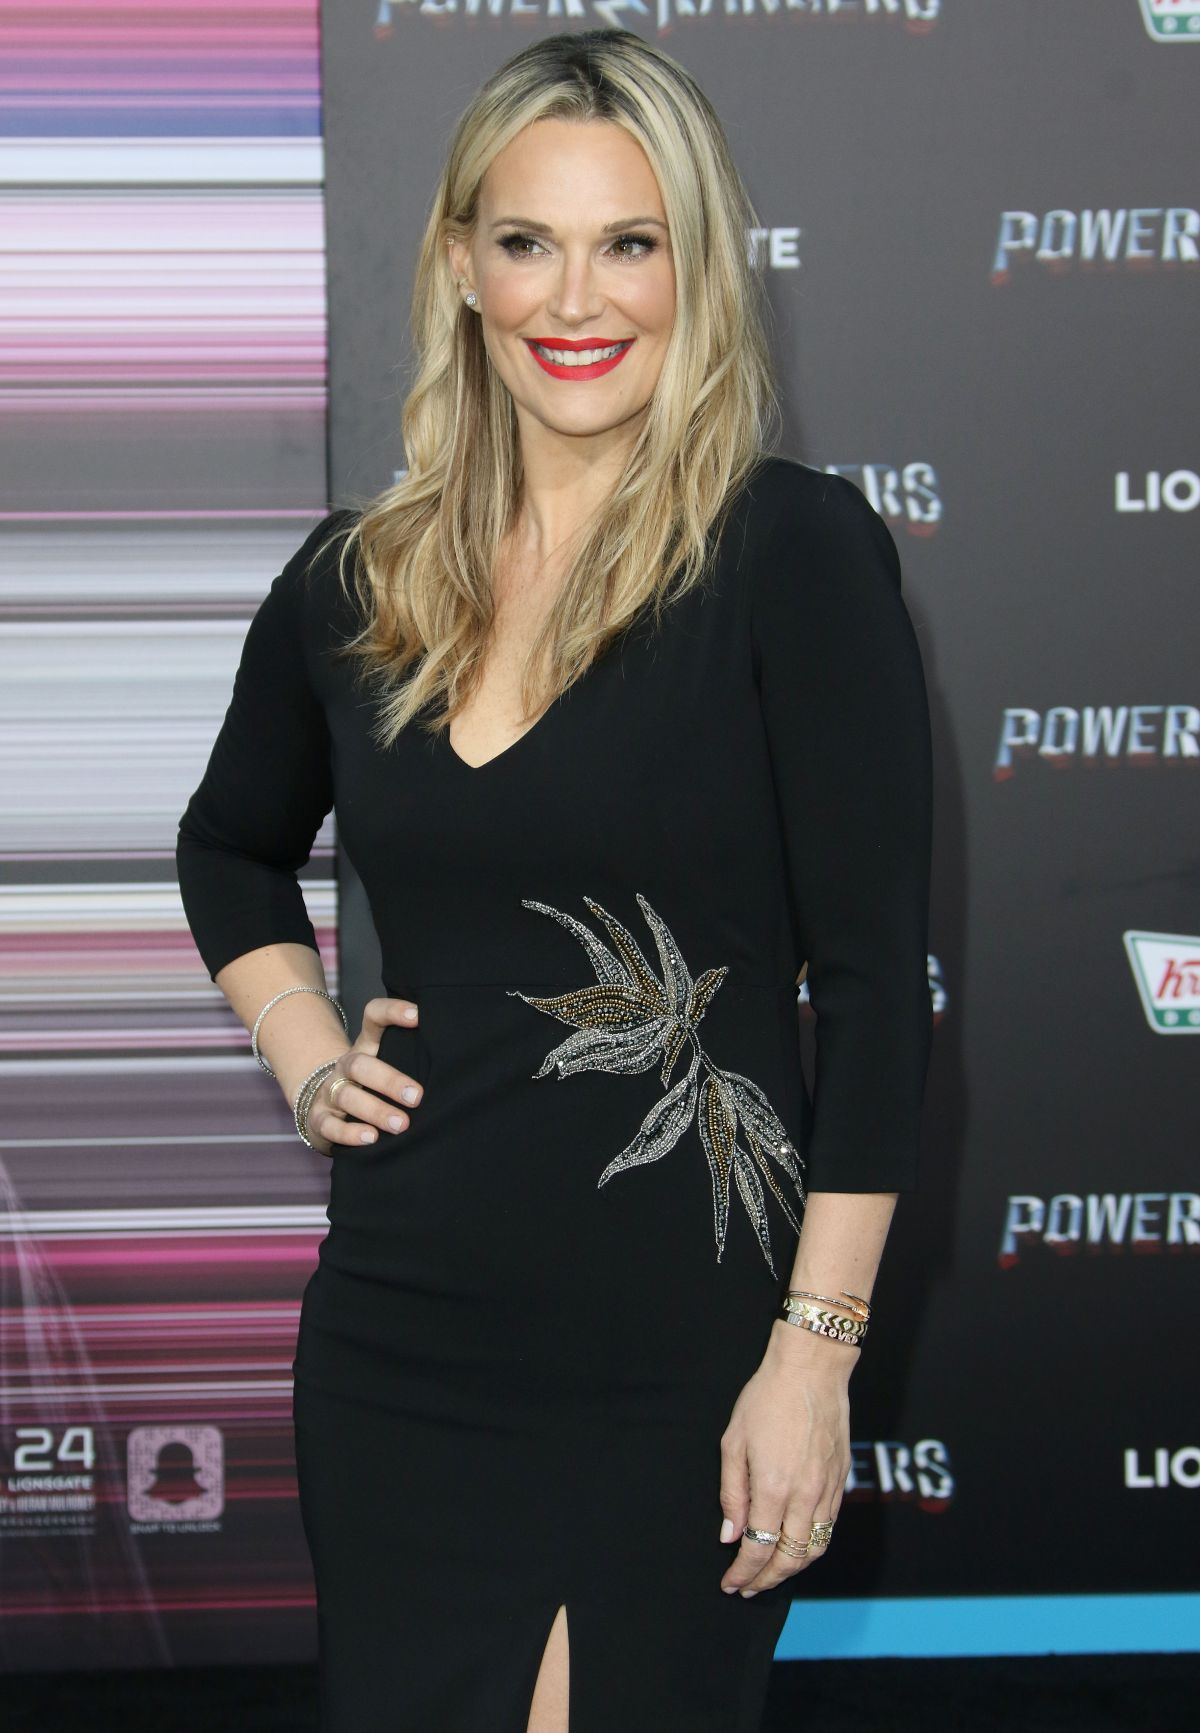 MOLLY SIMS at Power Rangers Premiere in Los Angeles 03/22/2017